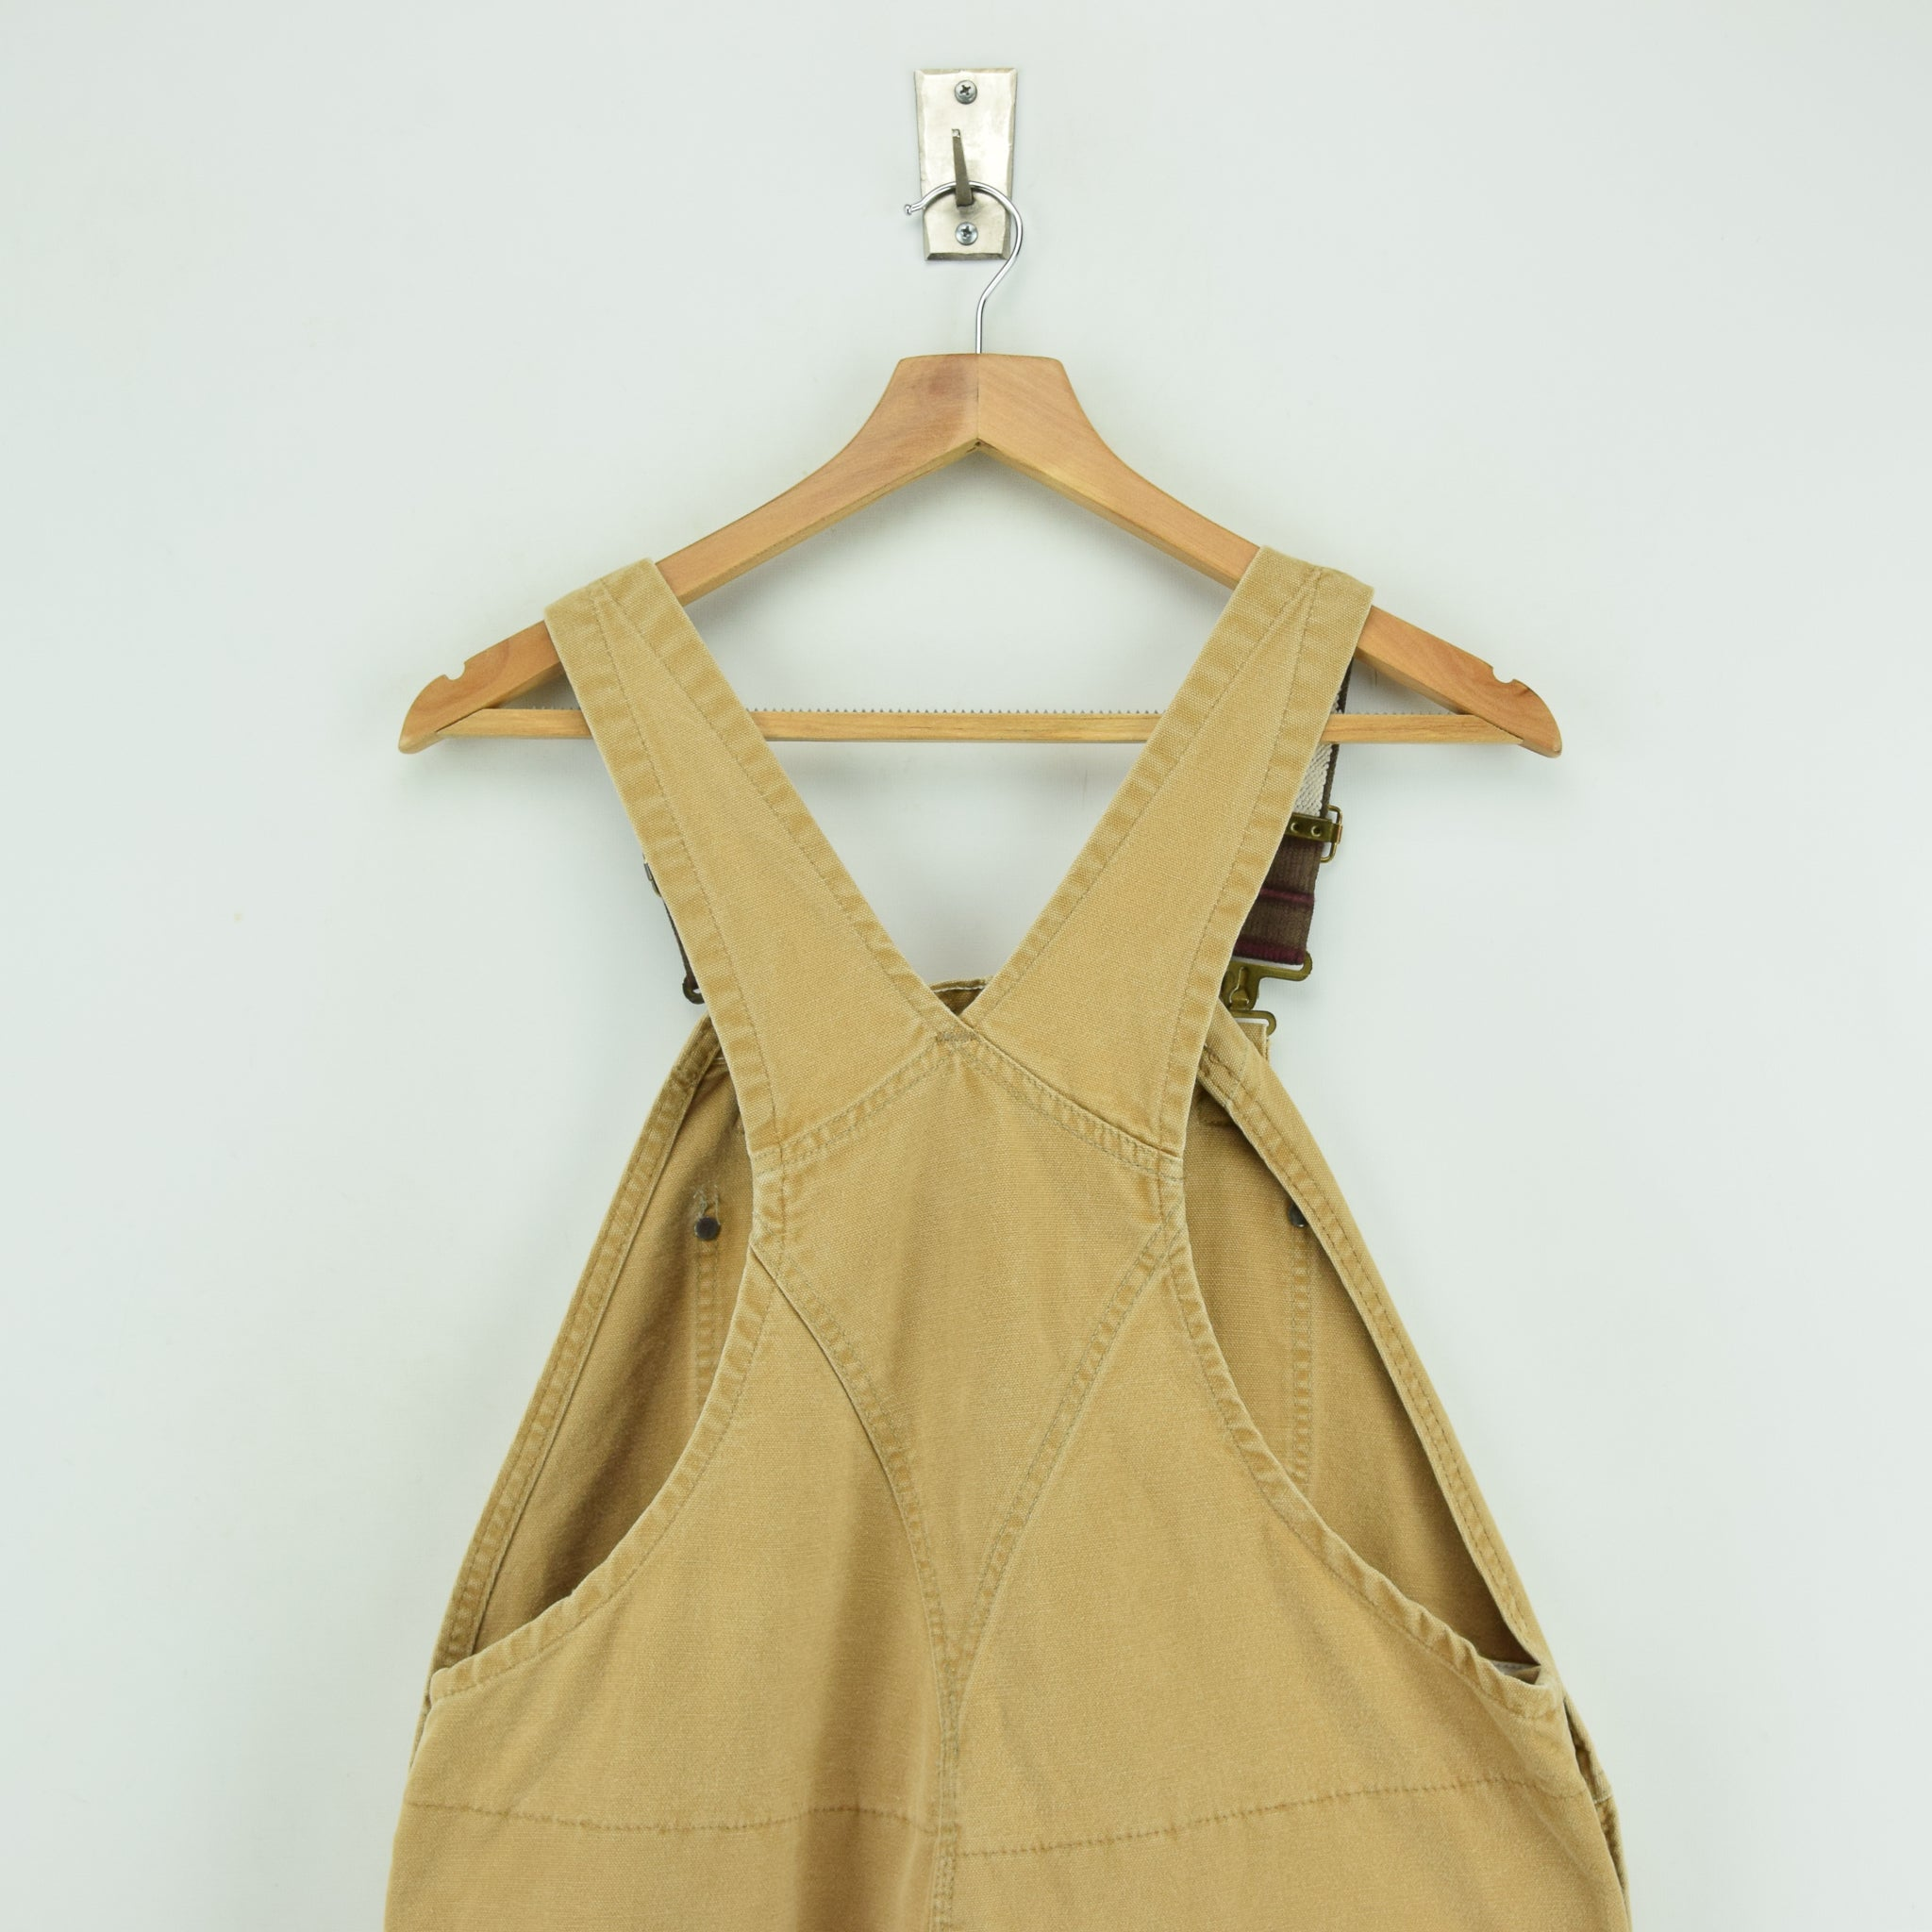 Vintage Carhartt Work Dungarees Tan Brown Duck Canvas Bib Overall Quilt Lined M upper back